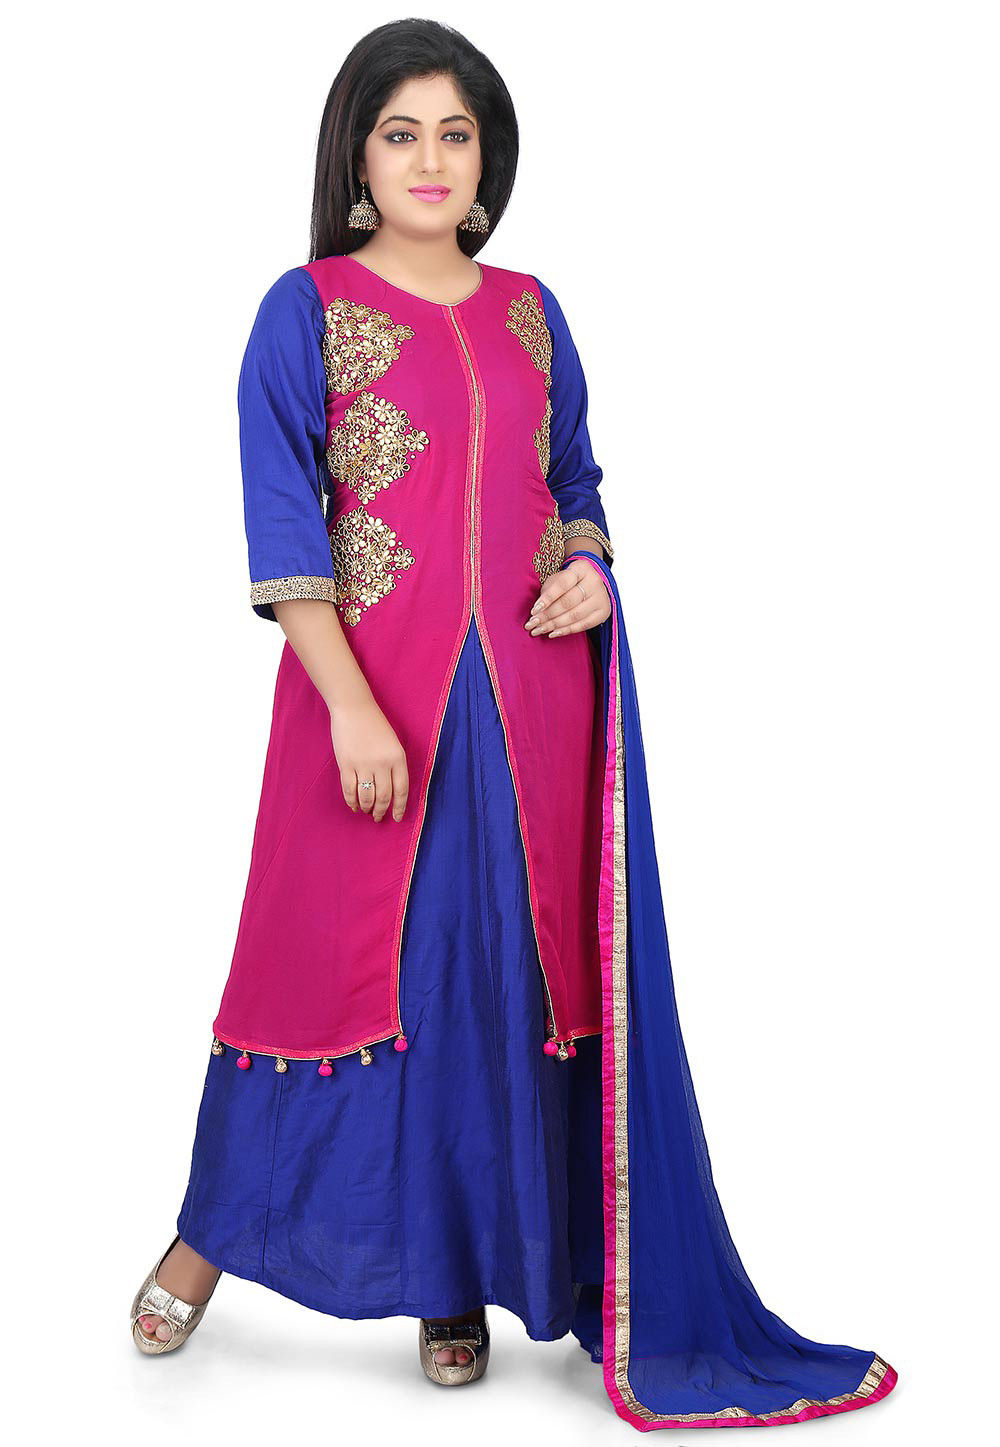 Gota Patti Georgette Abaya Style Suit in Fuchsia and Royal Blue